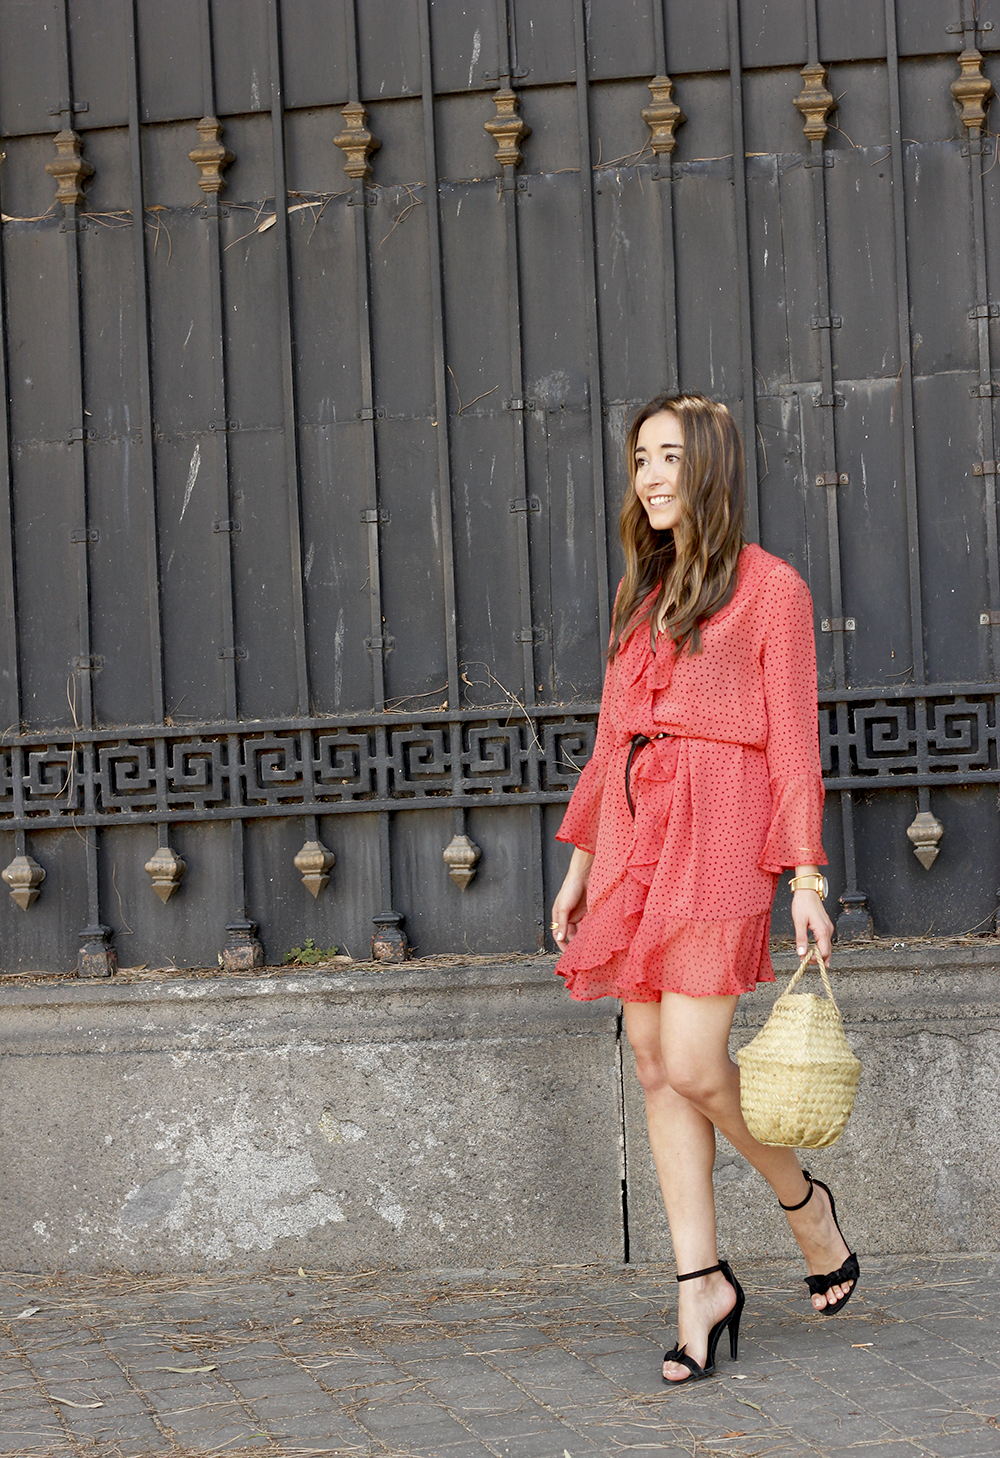 coral dress with dots and frills uterqüe black heels summer outfit style fashion02